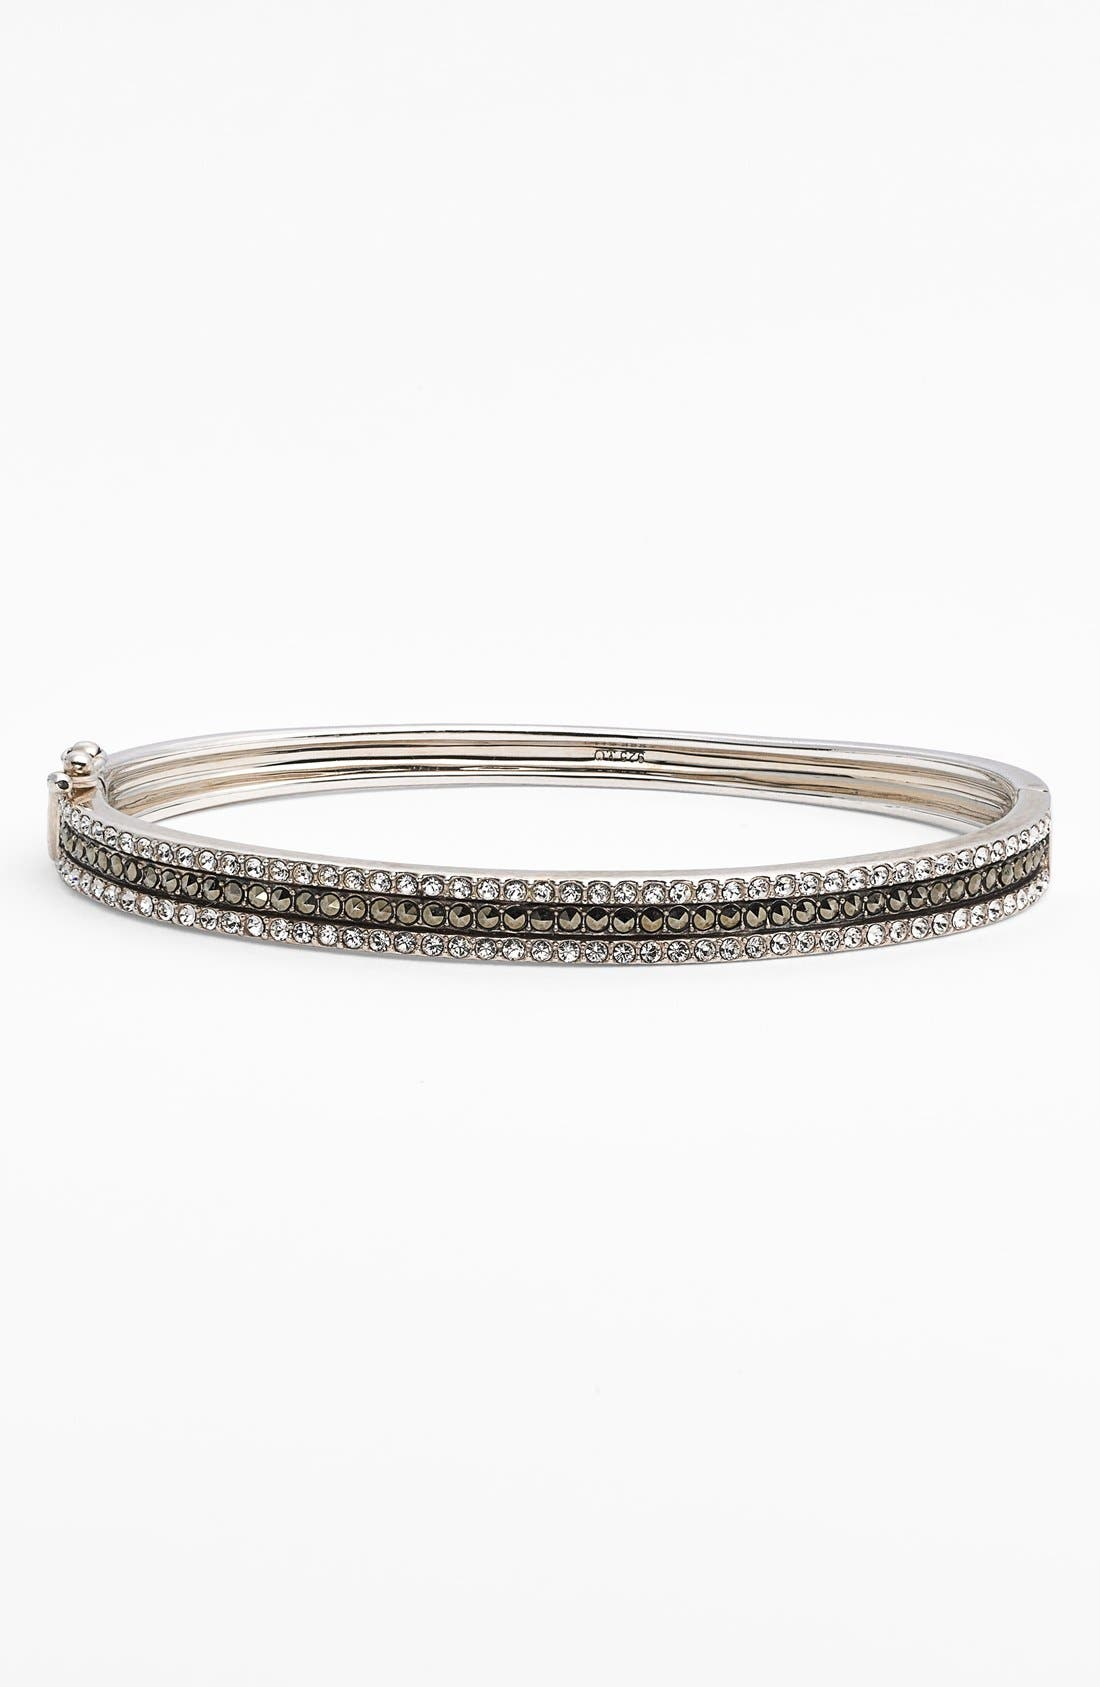 Judith Jack Triple Row Bangle